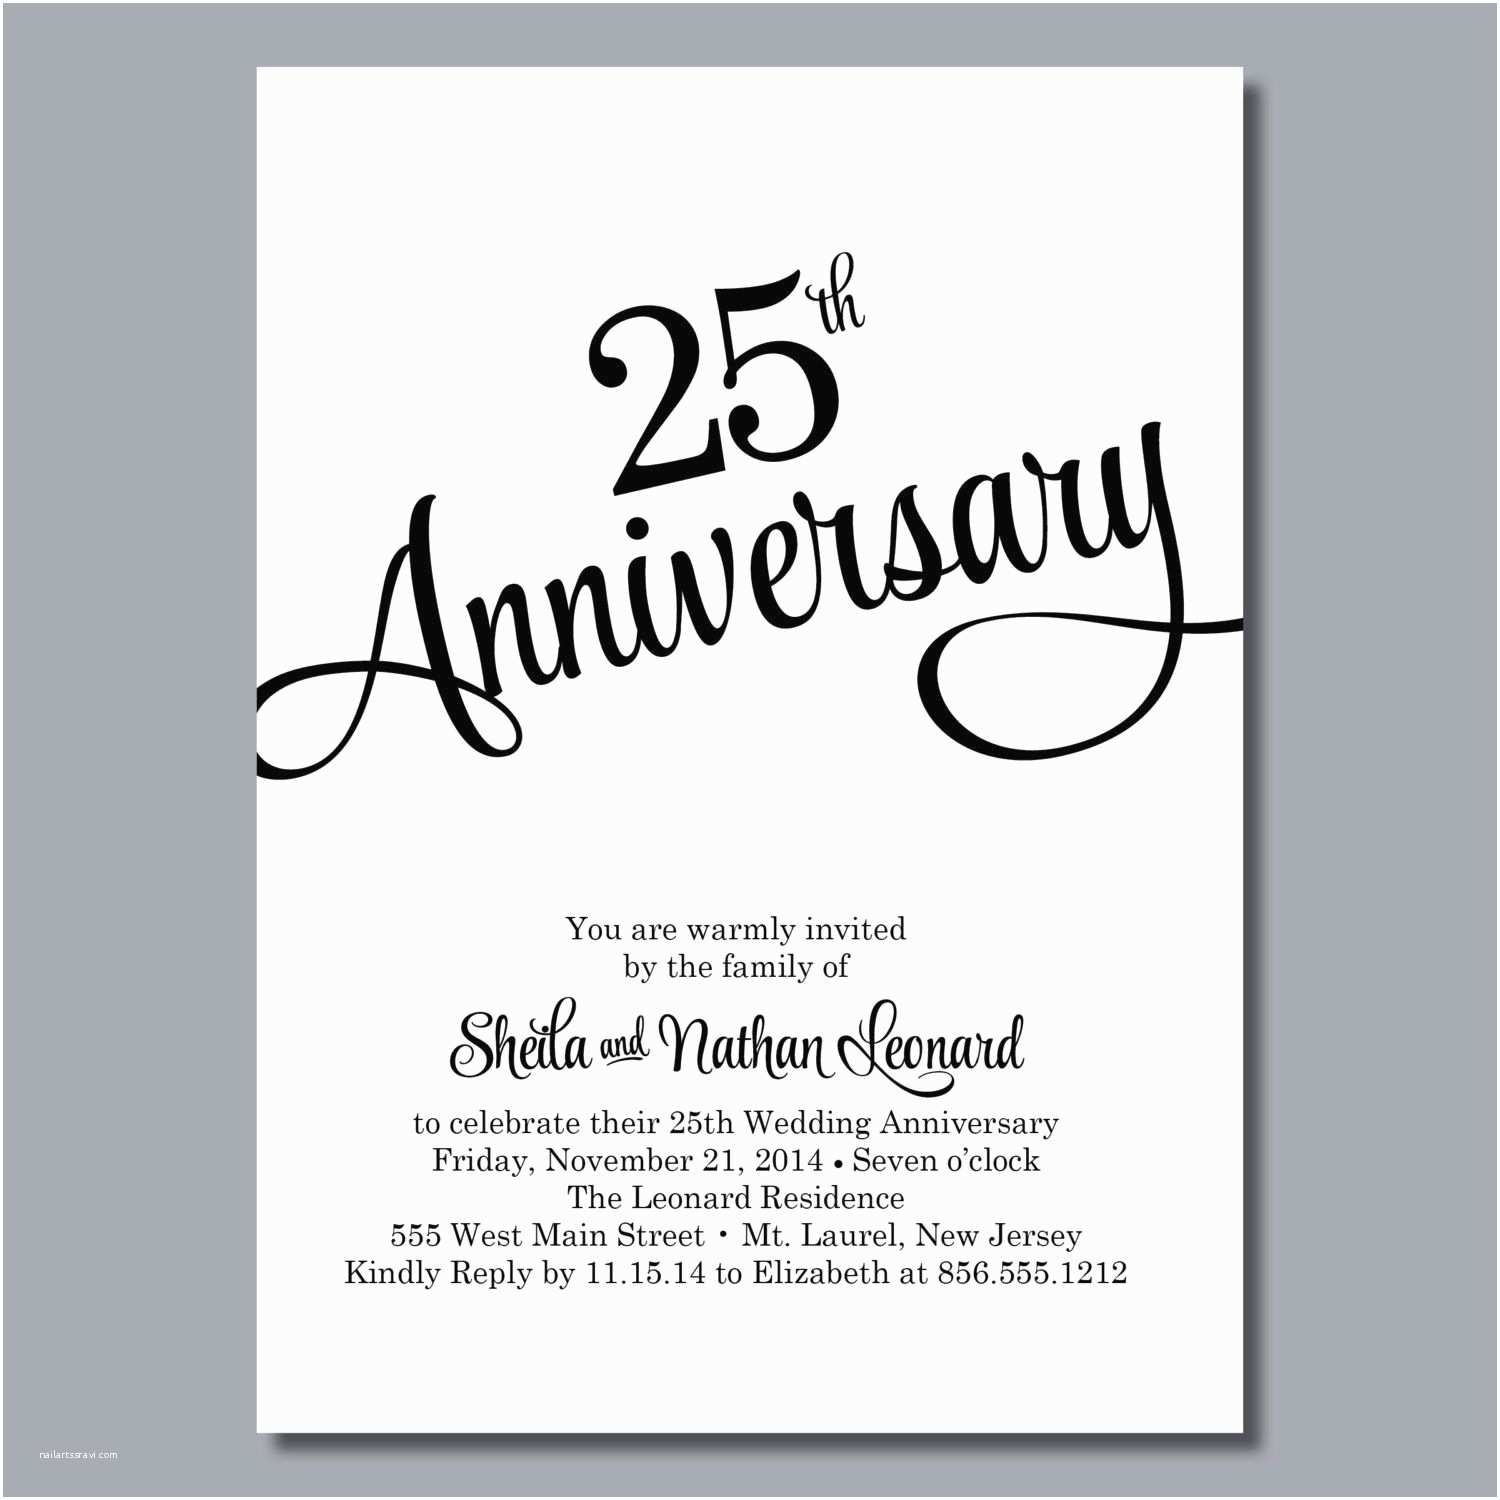 25th Wedding Anniversary Invitation Cards 25th Wedding Anniversary Invites 25th Wedding